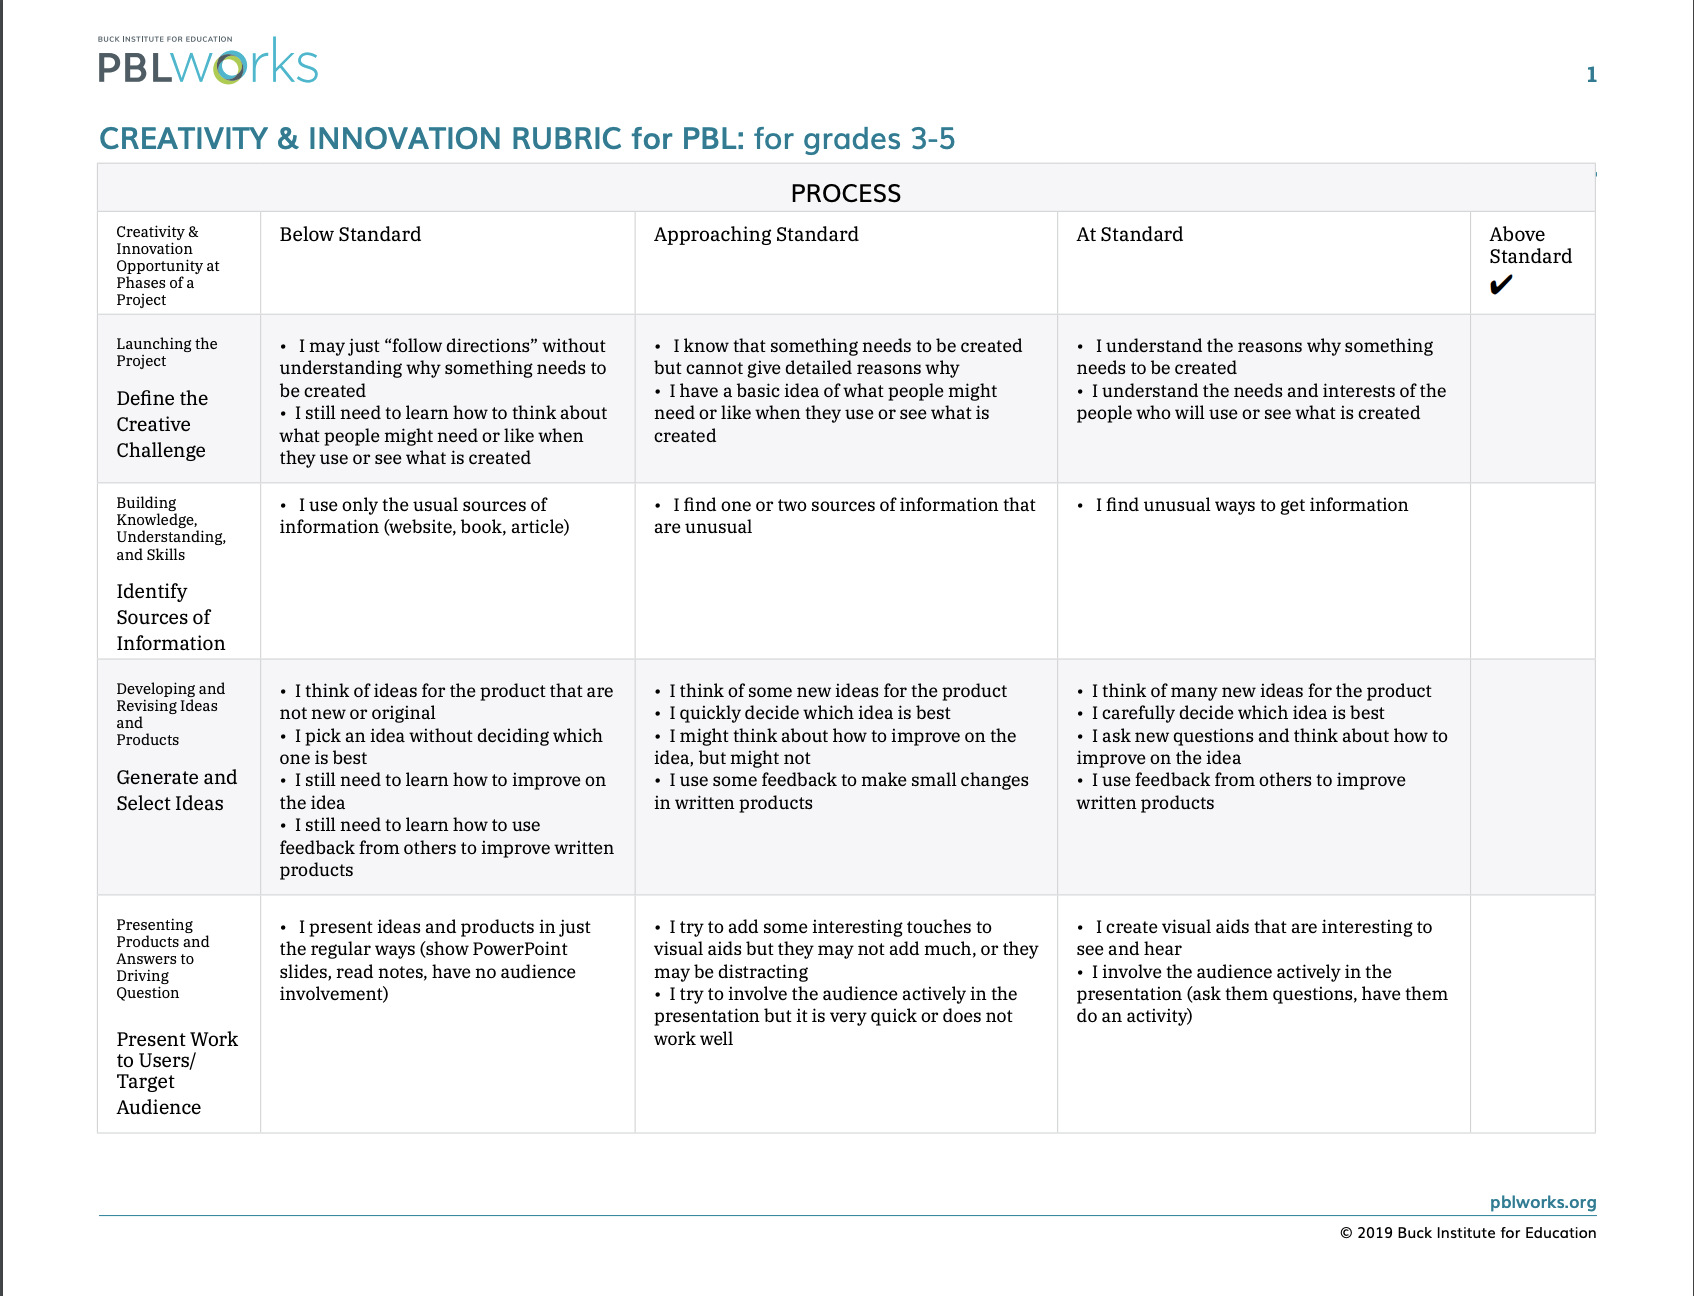 Creativity and Innovation Rubric 3-5 (non-CCSS)